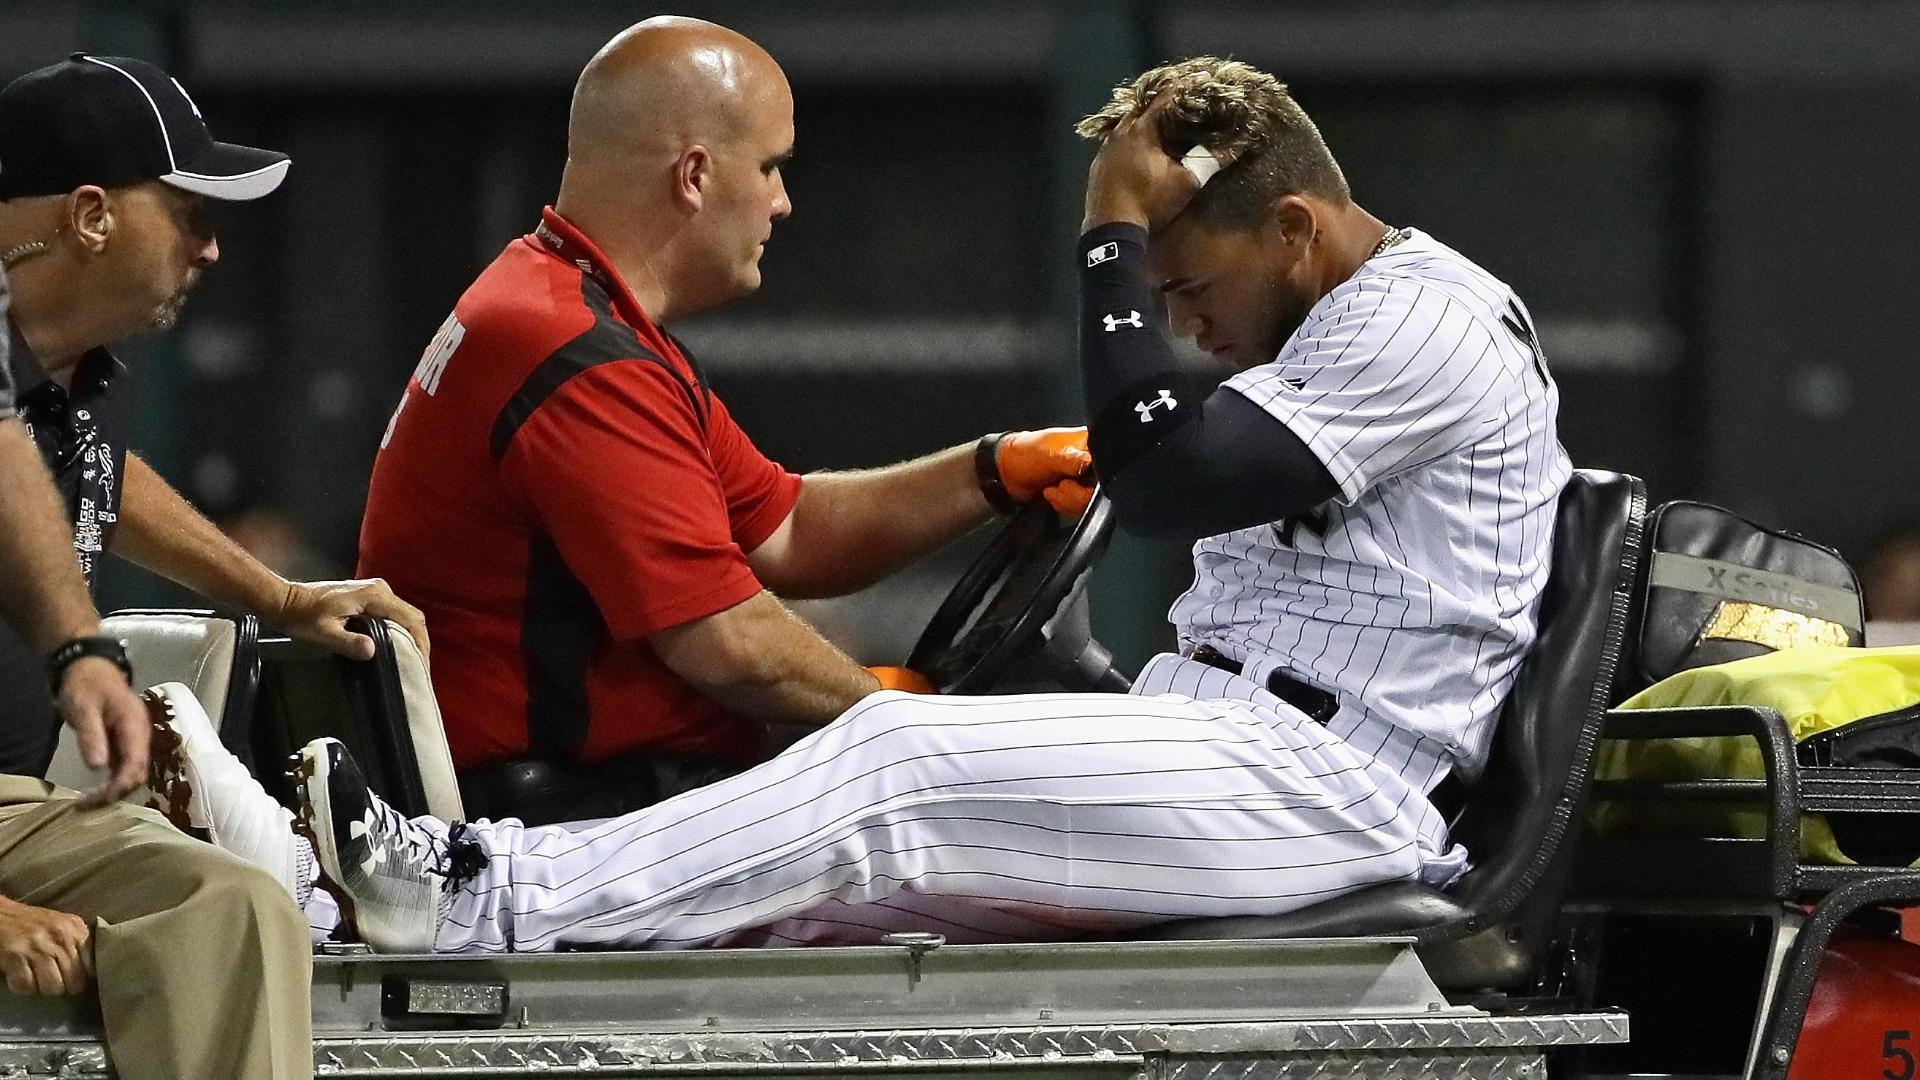 Moncada carted off after collision